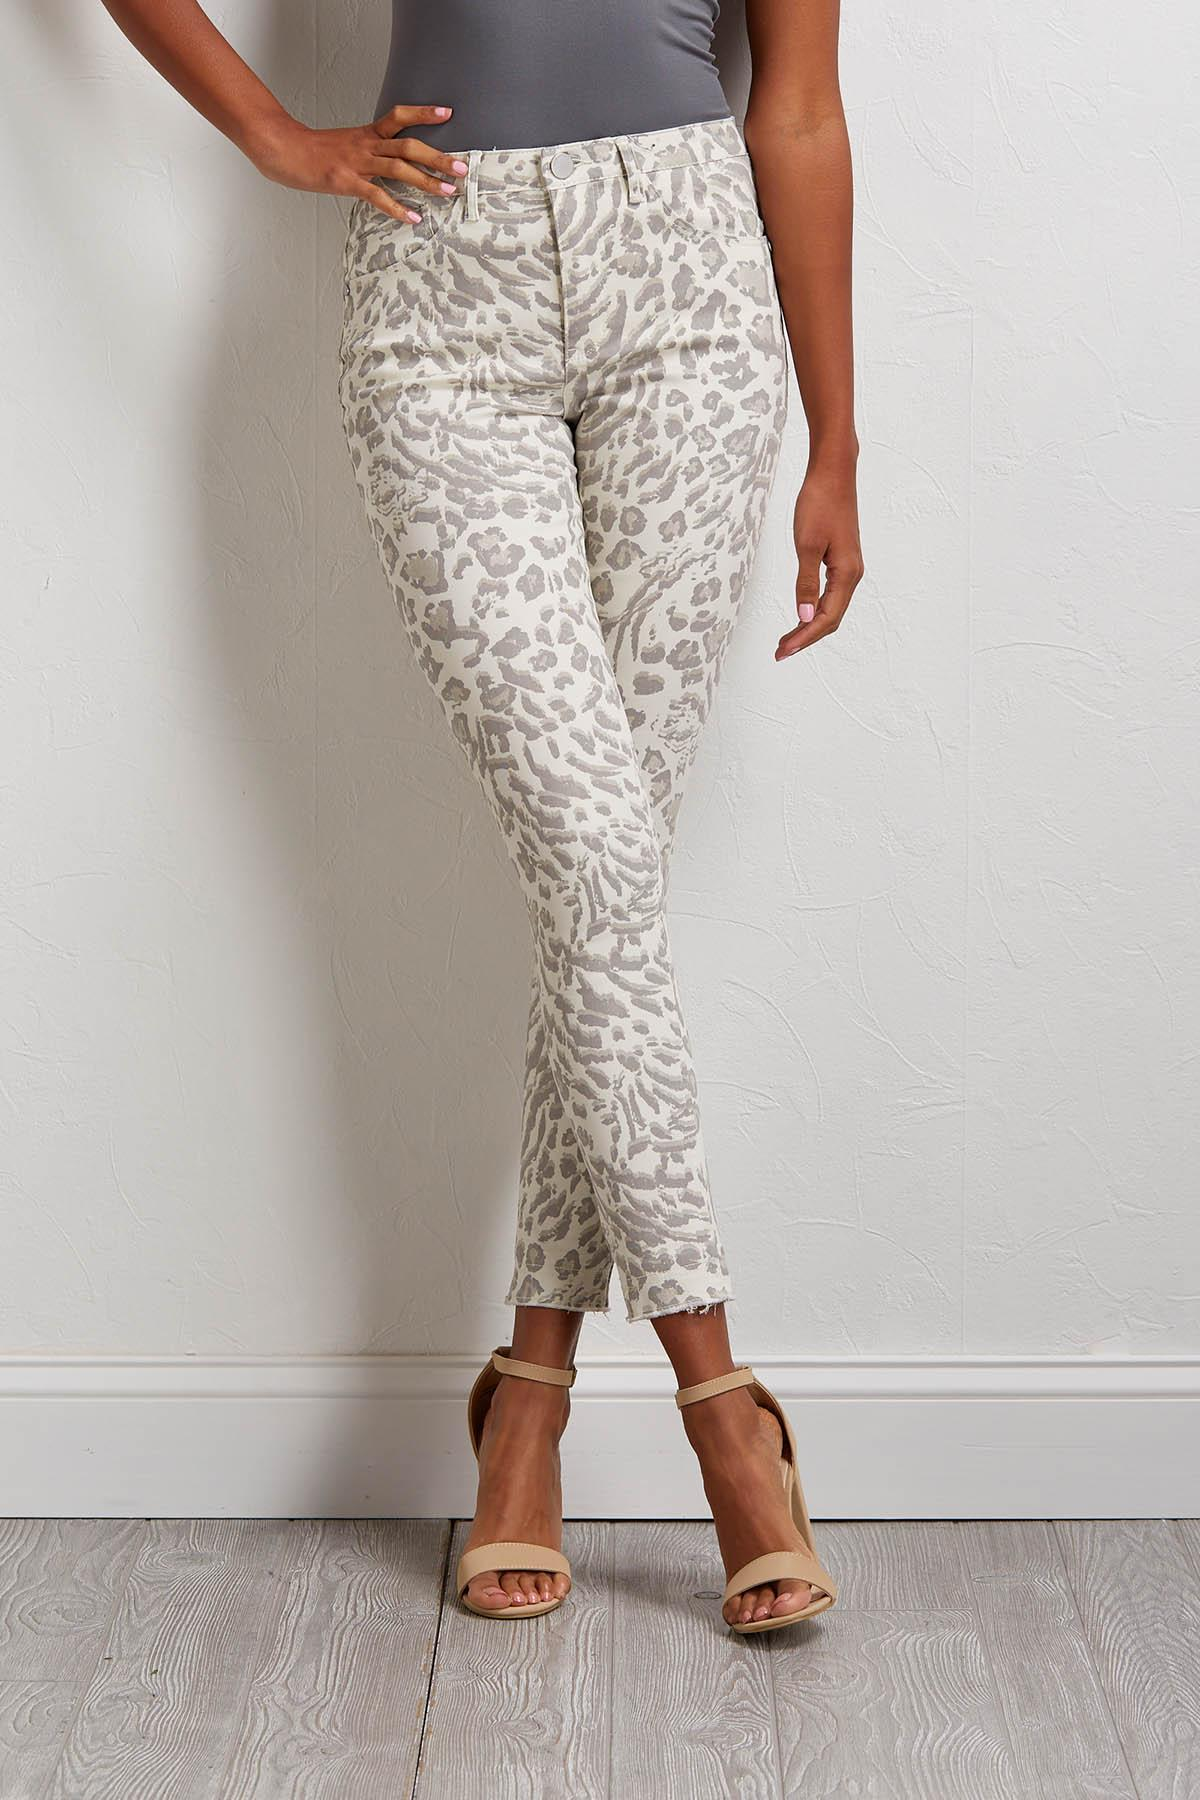 Snow Leopard Ankle Pants